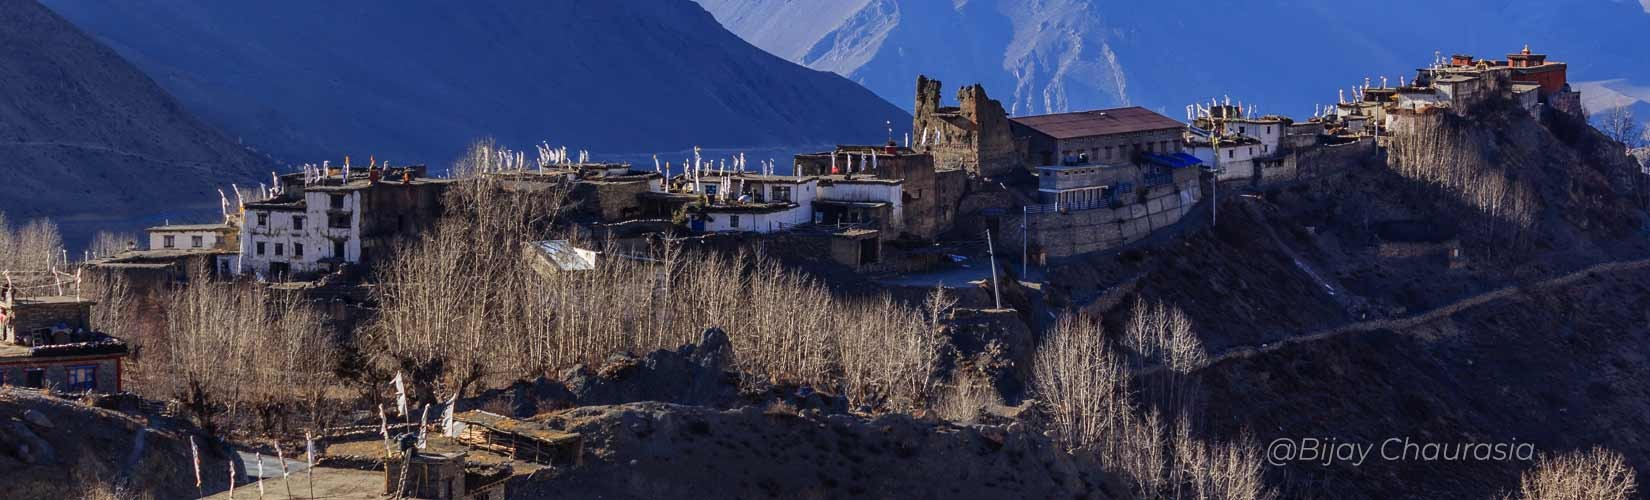 Tips for Upper Mustang Trek With Cost, Permit